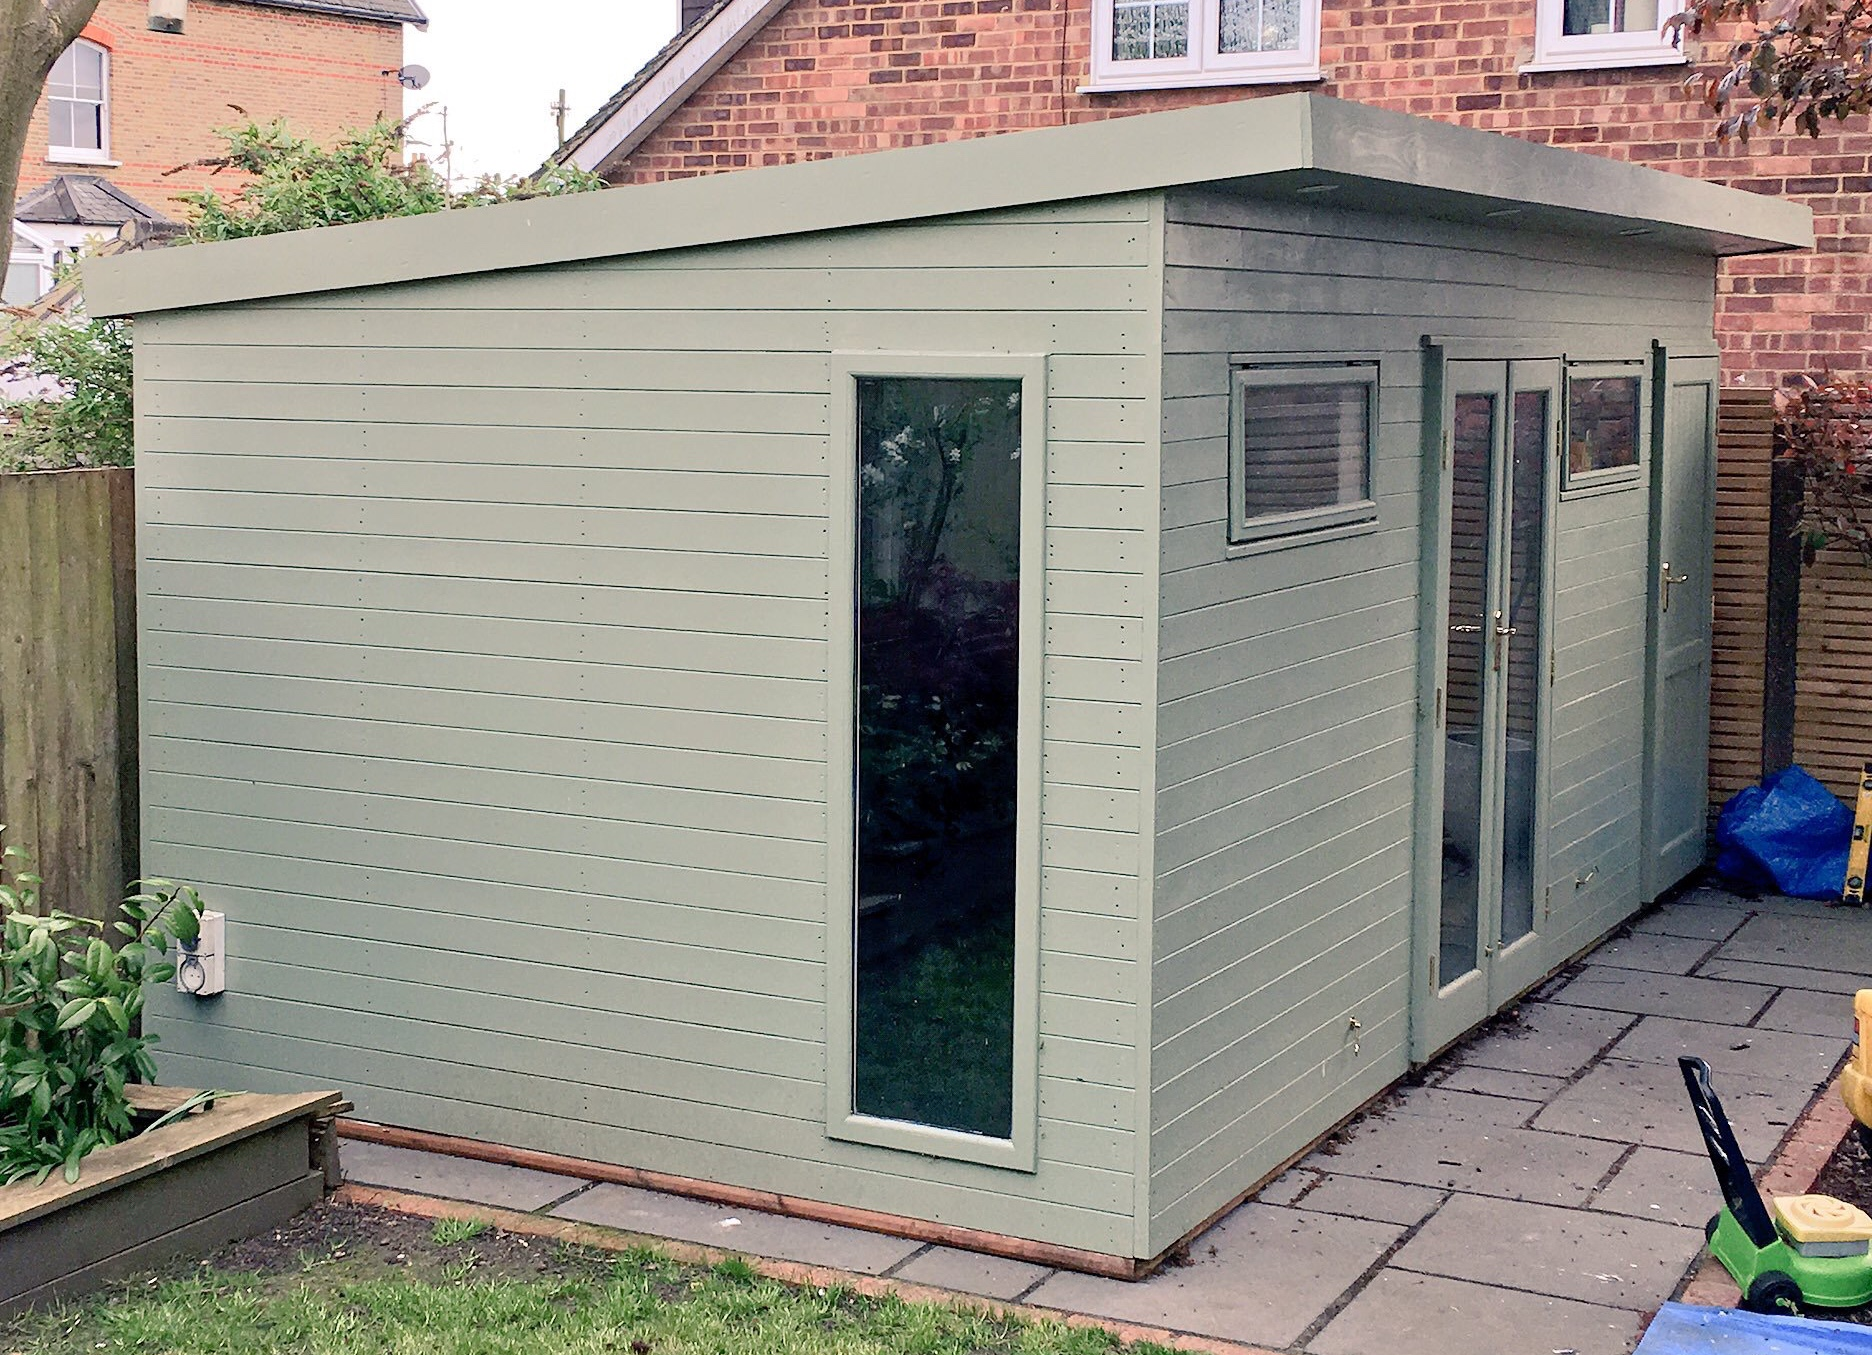 Arcade Shed painted